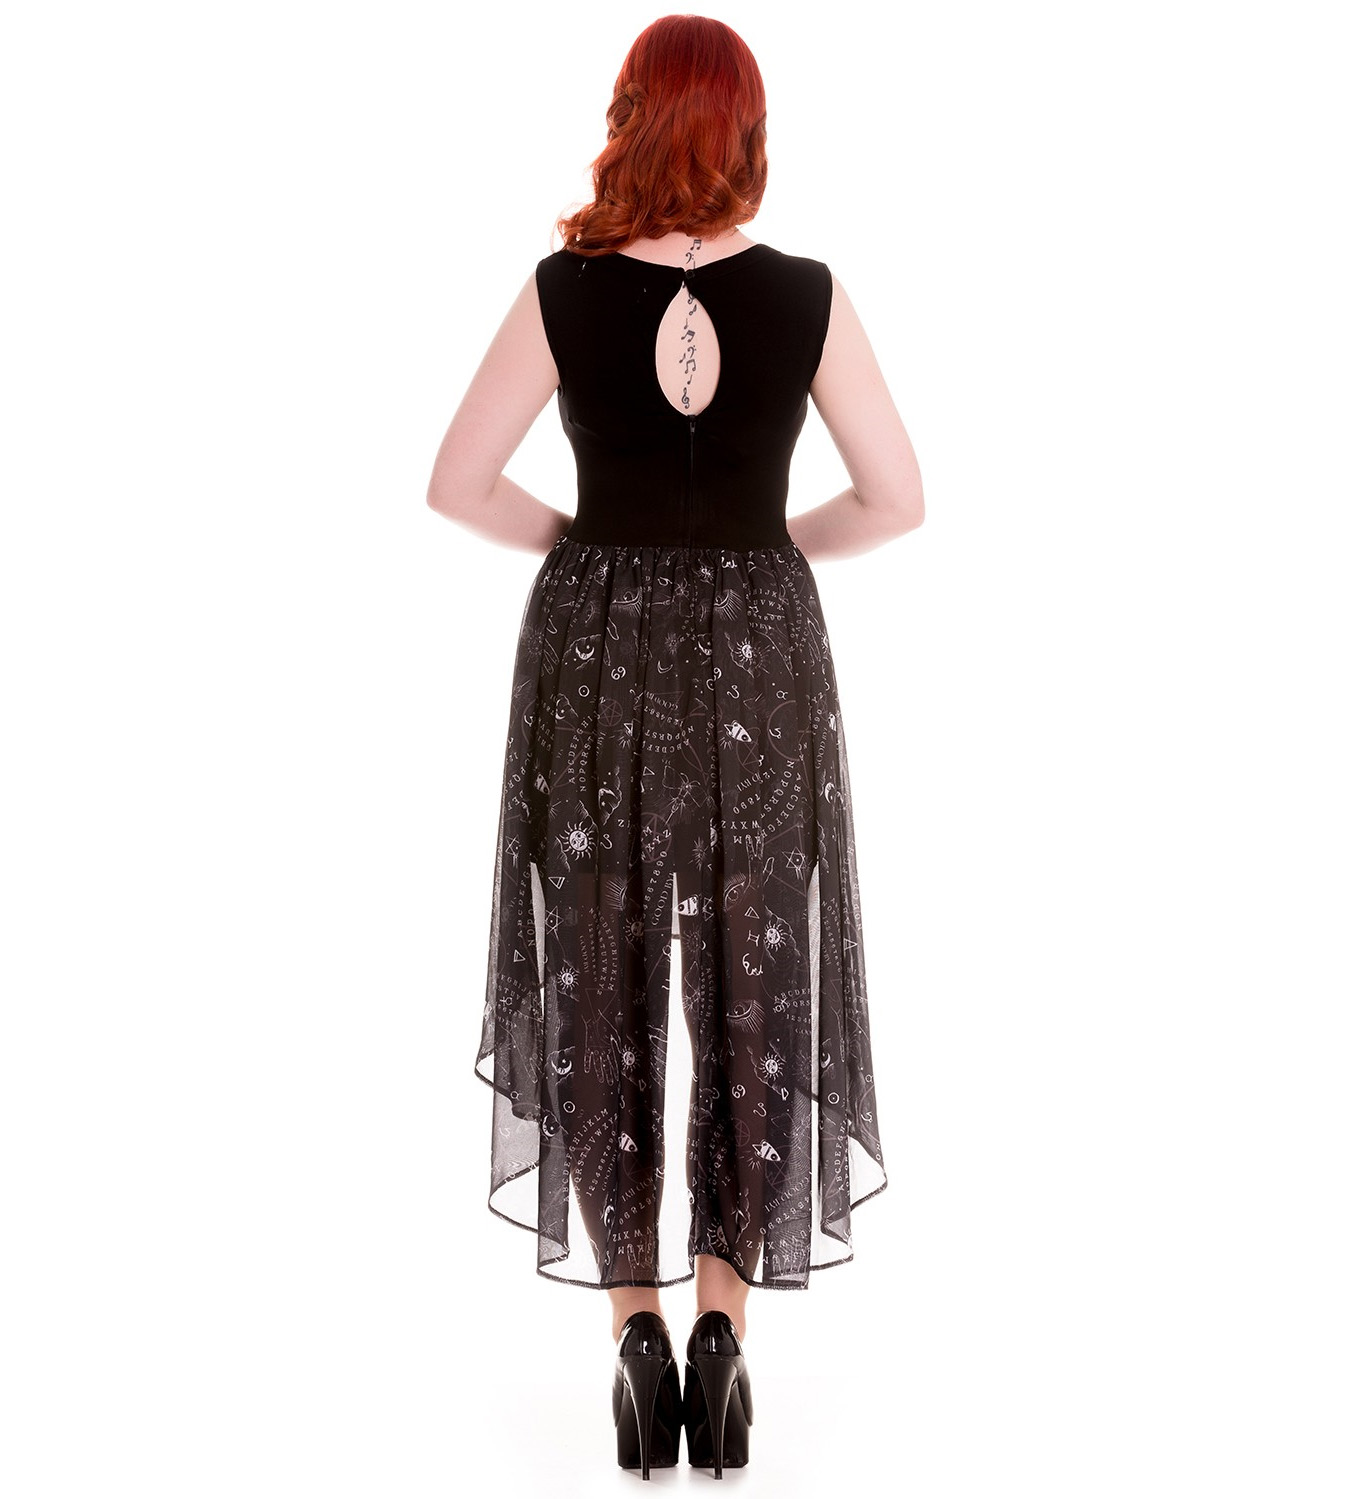 HELL-BUNNY-Spin-Doctor-Goth-Black-Witch-Ouija-SPIRIT-Dress-All-Sizes thumbnail 29